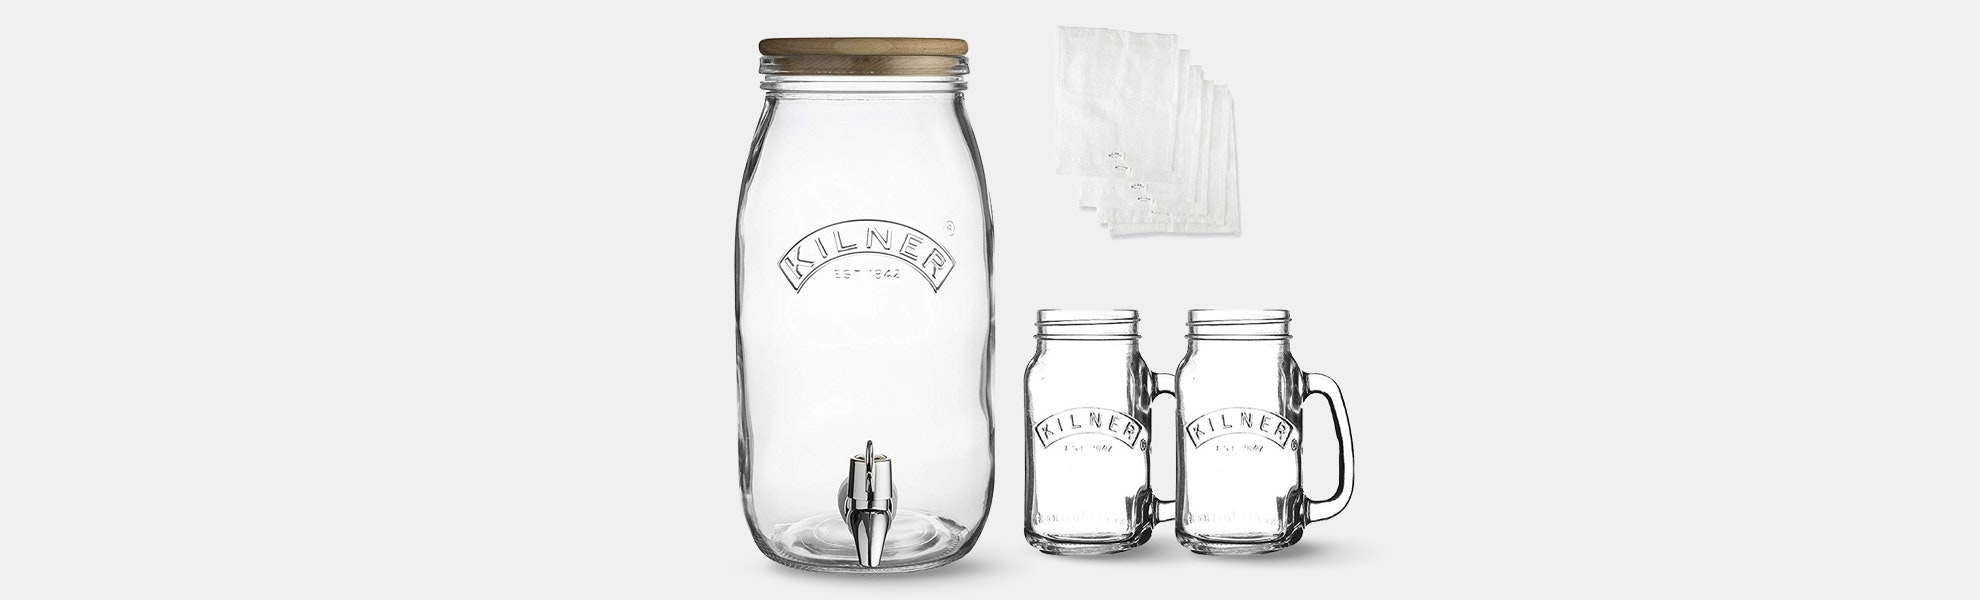 Kilner Homemade Kombucha Drink Set